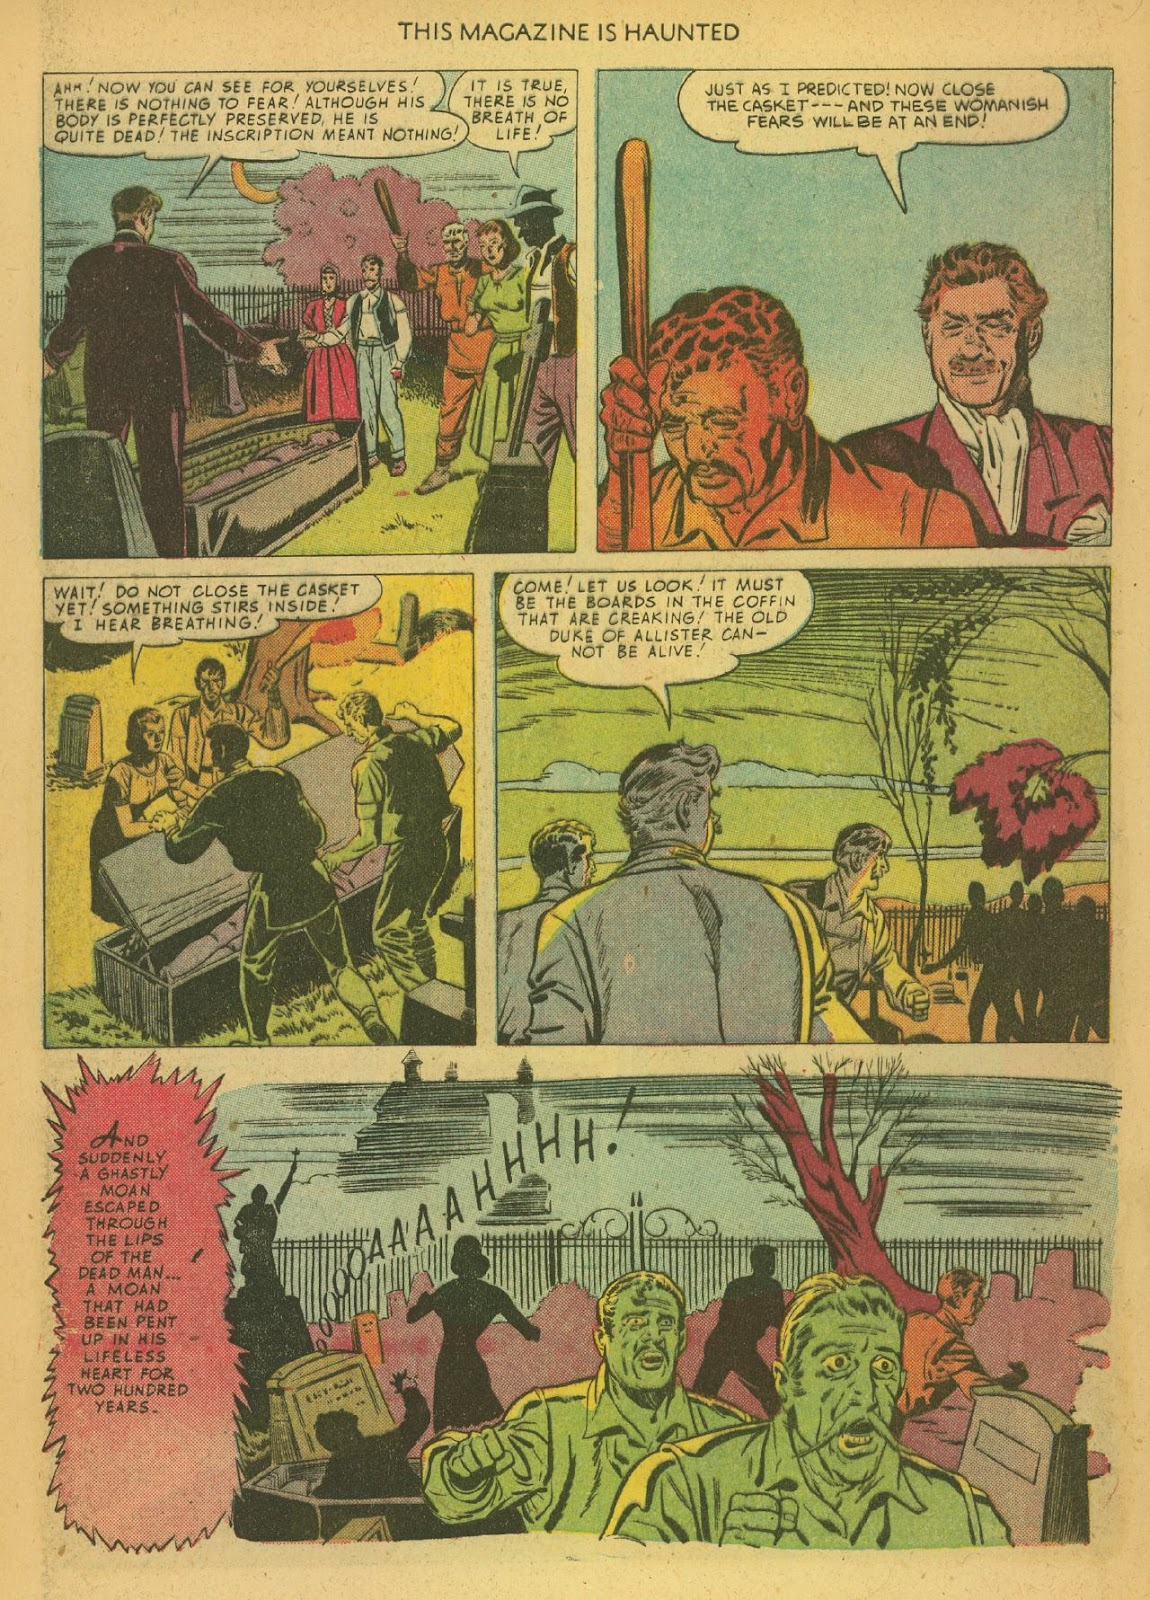 Read online This Magazine Is Haunted comic -  Issue #1 - 8